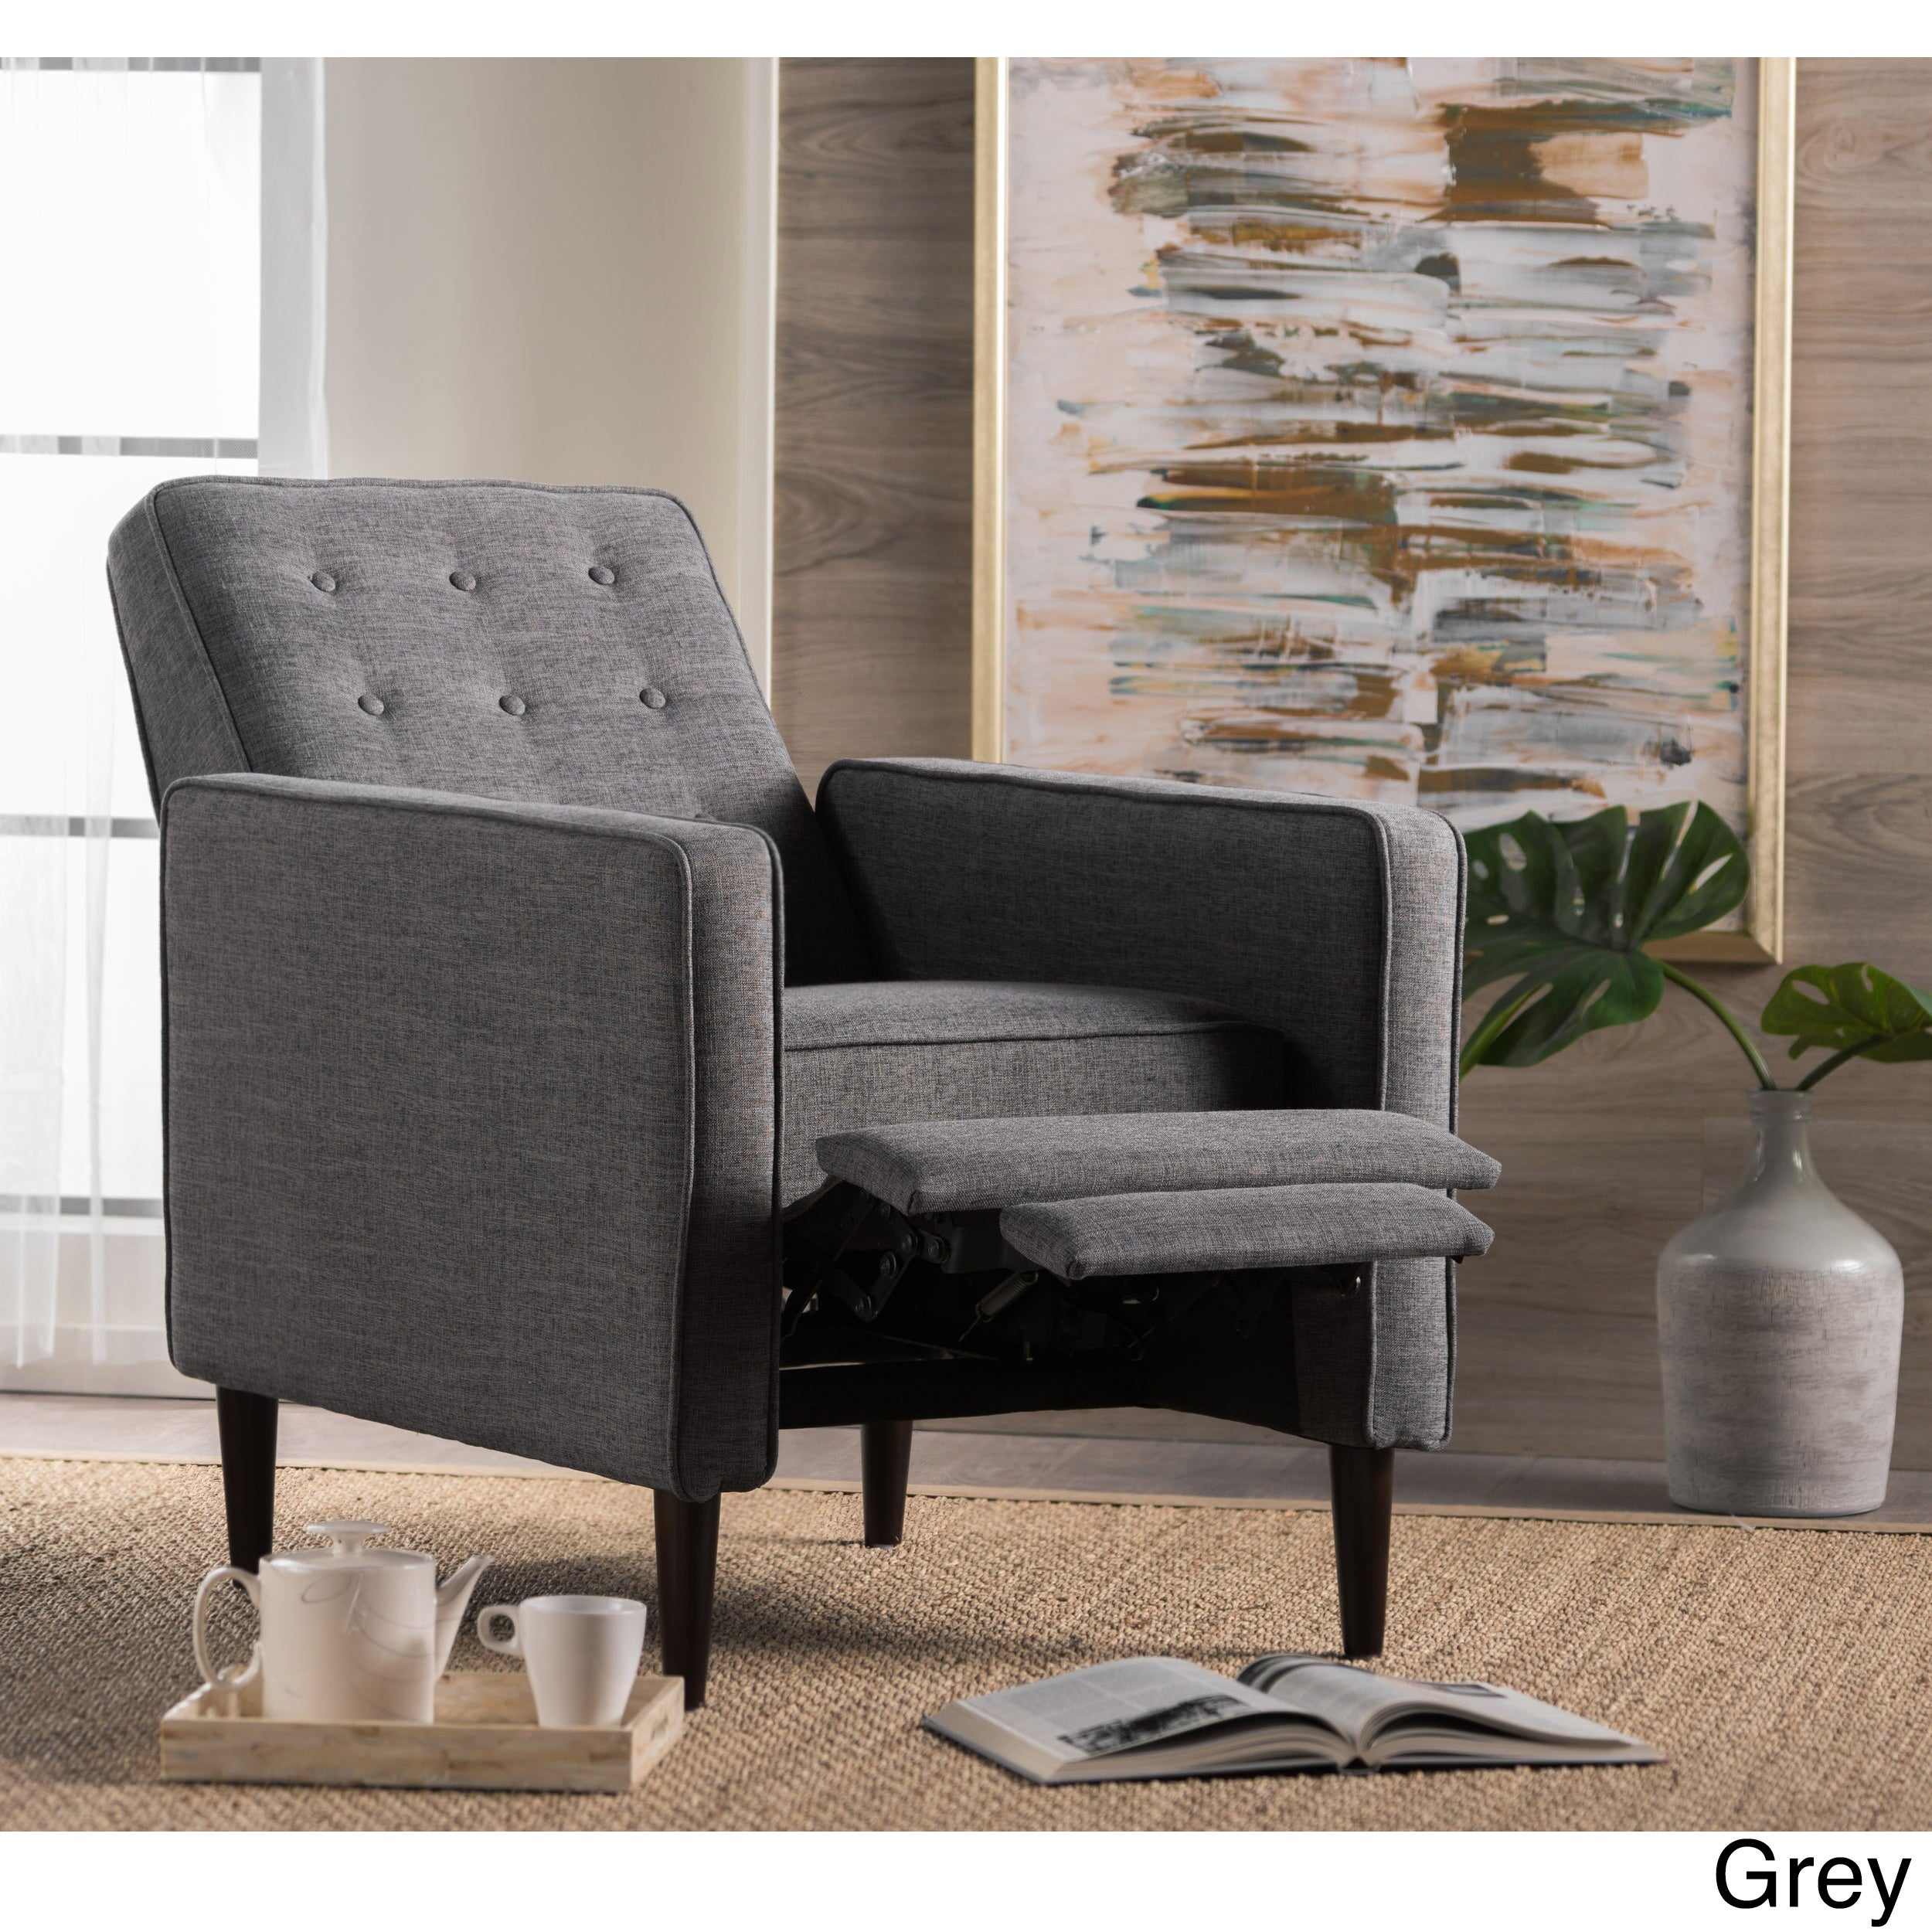 Shop Mervynn Mid Century Button Tufted Fabric Recliner Club Chair By  Christopher Knight Home   On Sale   Free Shipping Today   Overstock.com    15037715